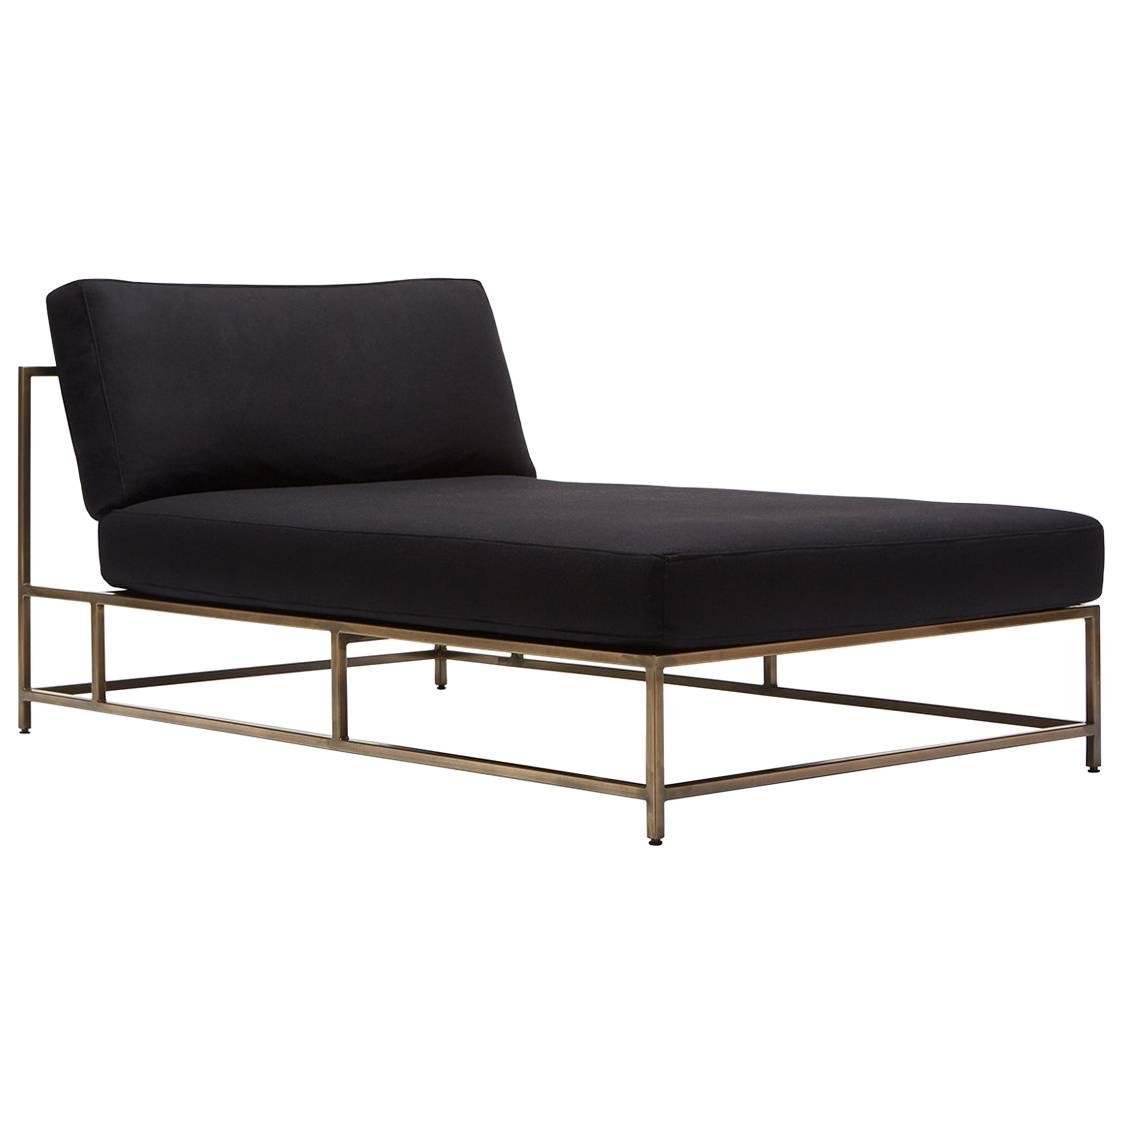 Black Wool And Antique Brass Chaise Lounge For Sale At 1stdibs